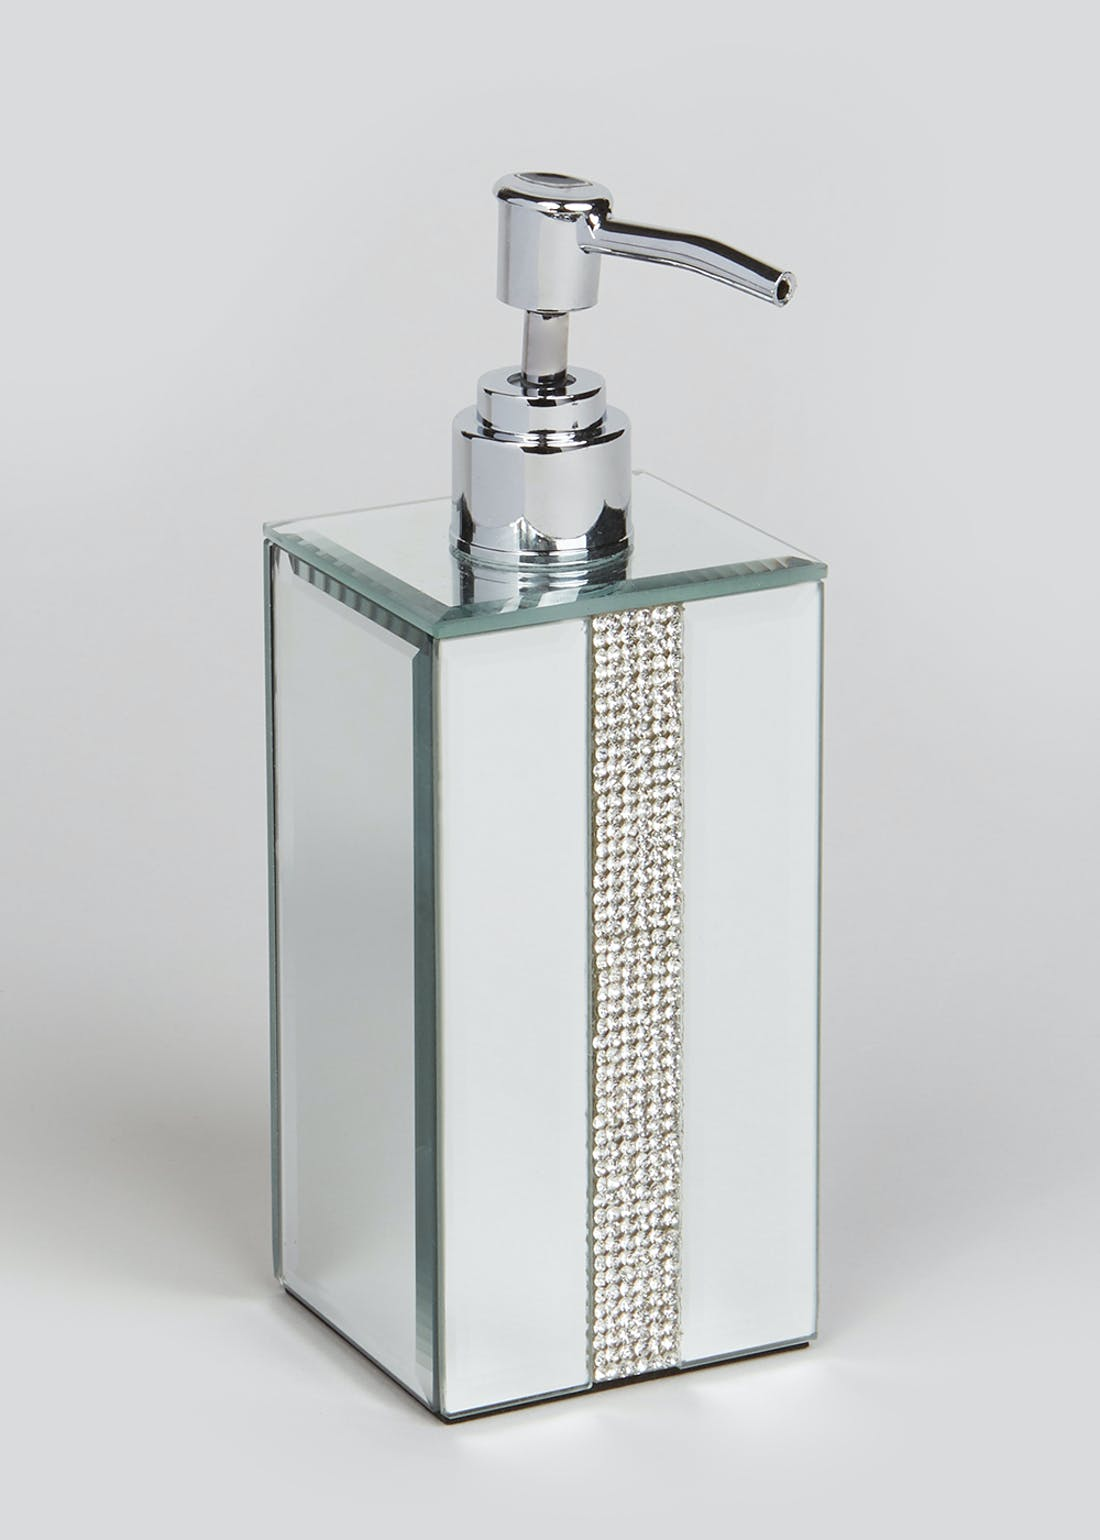 Mirrored Diamante Soap Dispenser (12cm x 6.5cm)